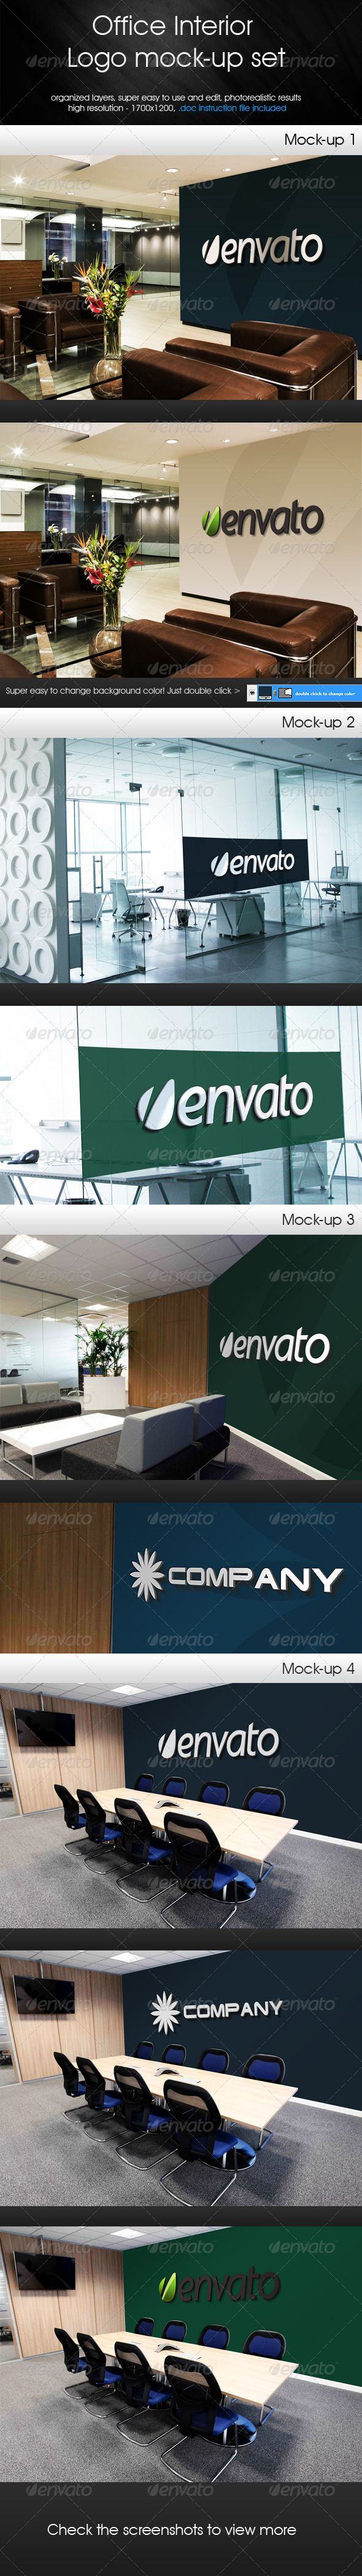 Office Interior - Logo Mock-up Set  #GraphicRiver         Unique Office interior logo mock-up set. Very easy to use and edit with smart objects. Photorealistic results. High resolution – 1700×1200. Instruction file included. Changeable background color. Well organized layers.     Created: 30August13 GraphicsFilesIncluded: PhotoshopPSD #JPGImage HighResolution: Yes Layered: Yes MinimumAdobeCSVersion: CS3 PixelDimensions: 1700x1200 PrintDimensions: 23.6x16.6 Tags: background #changeable #easy…